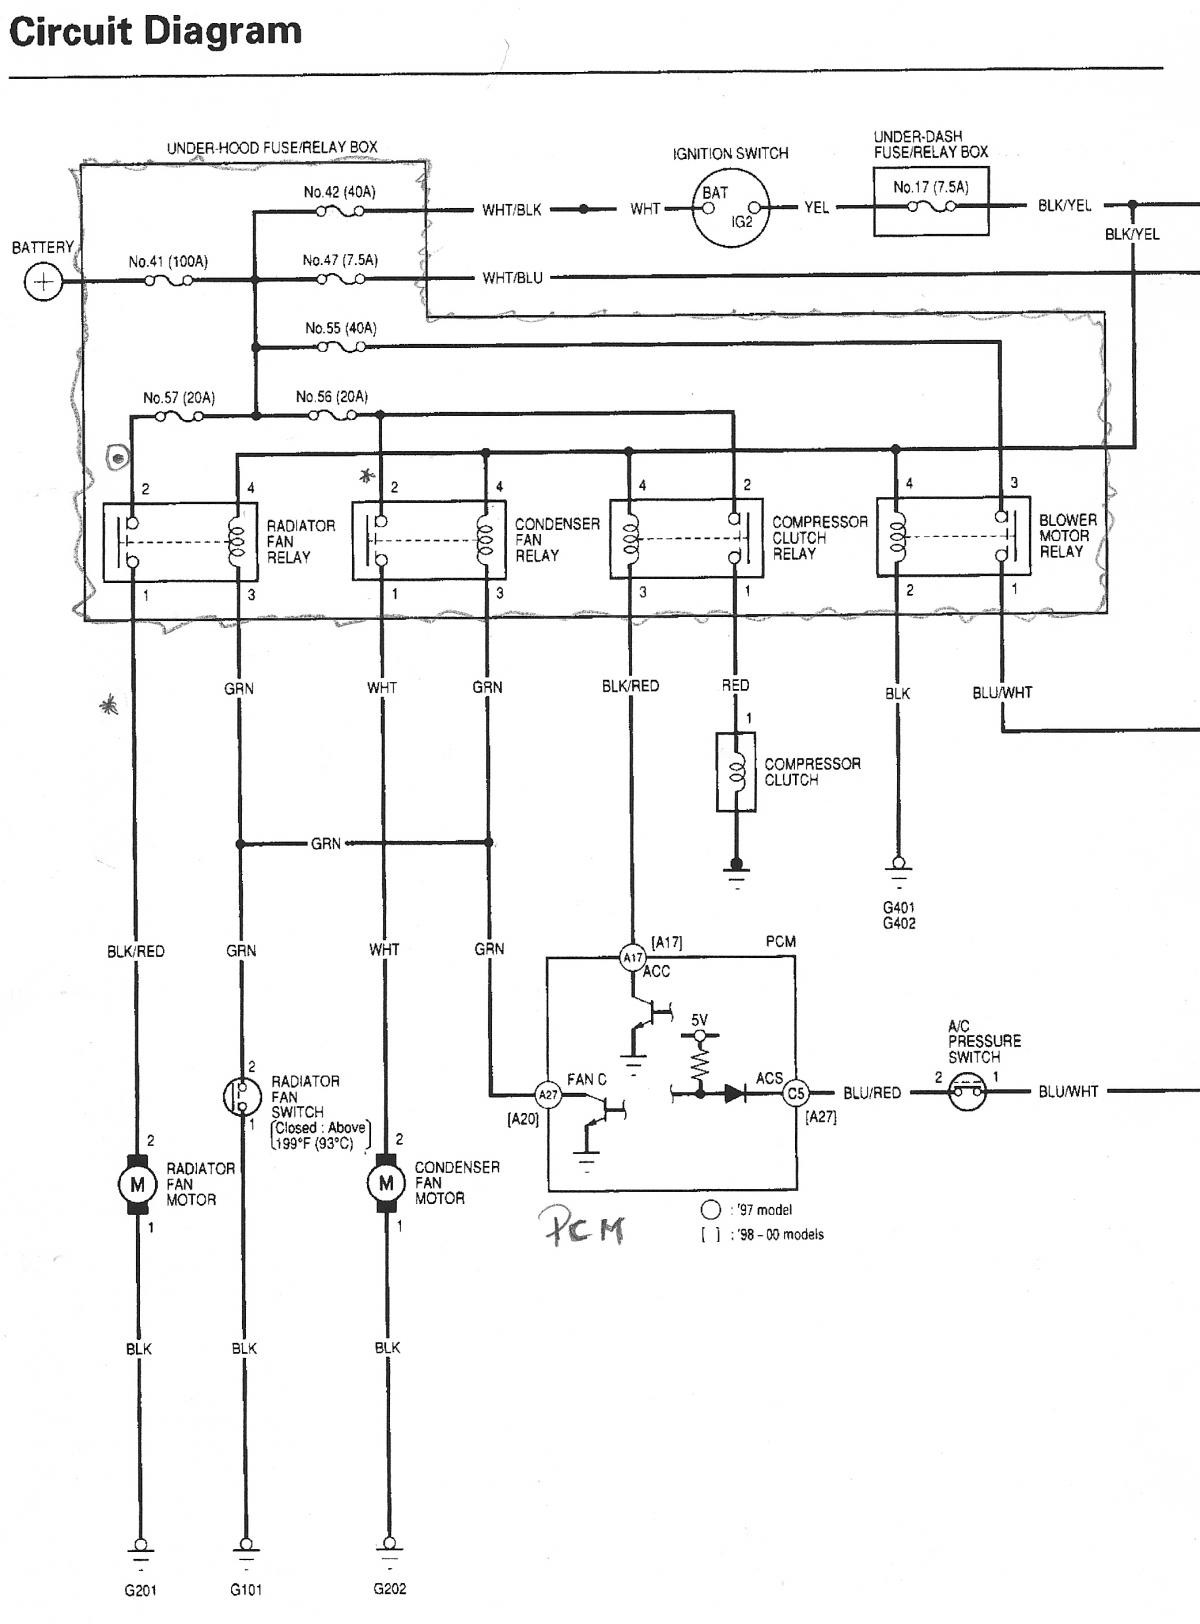 2007 Honda Accord Engine Diagram 1993 Honda Accord Wiring Harness Diagram Furthermore 2001 Honda Of 2007 Honda Accord Engine Diagram Honda Civic Engine Diagram 2007 Mazda Cx 7 Engine Diagram 1997 Honda